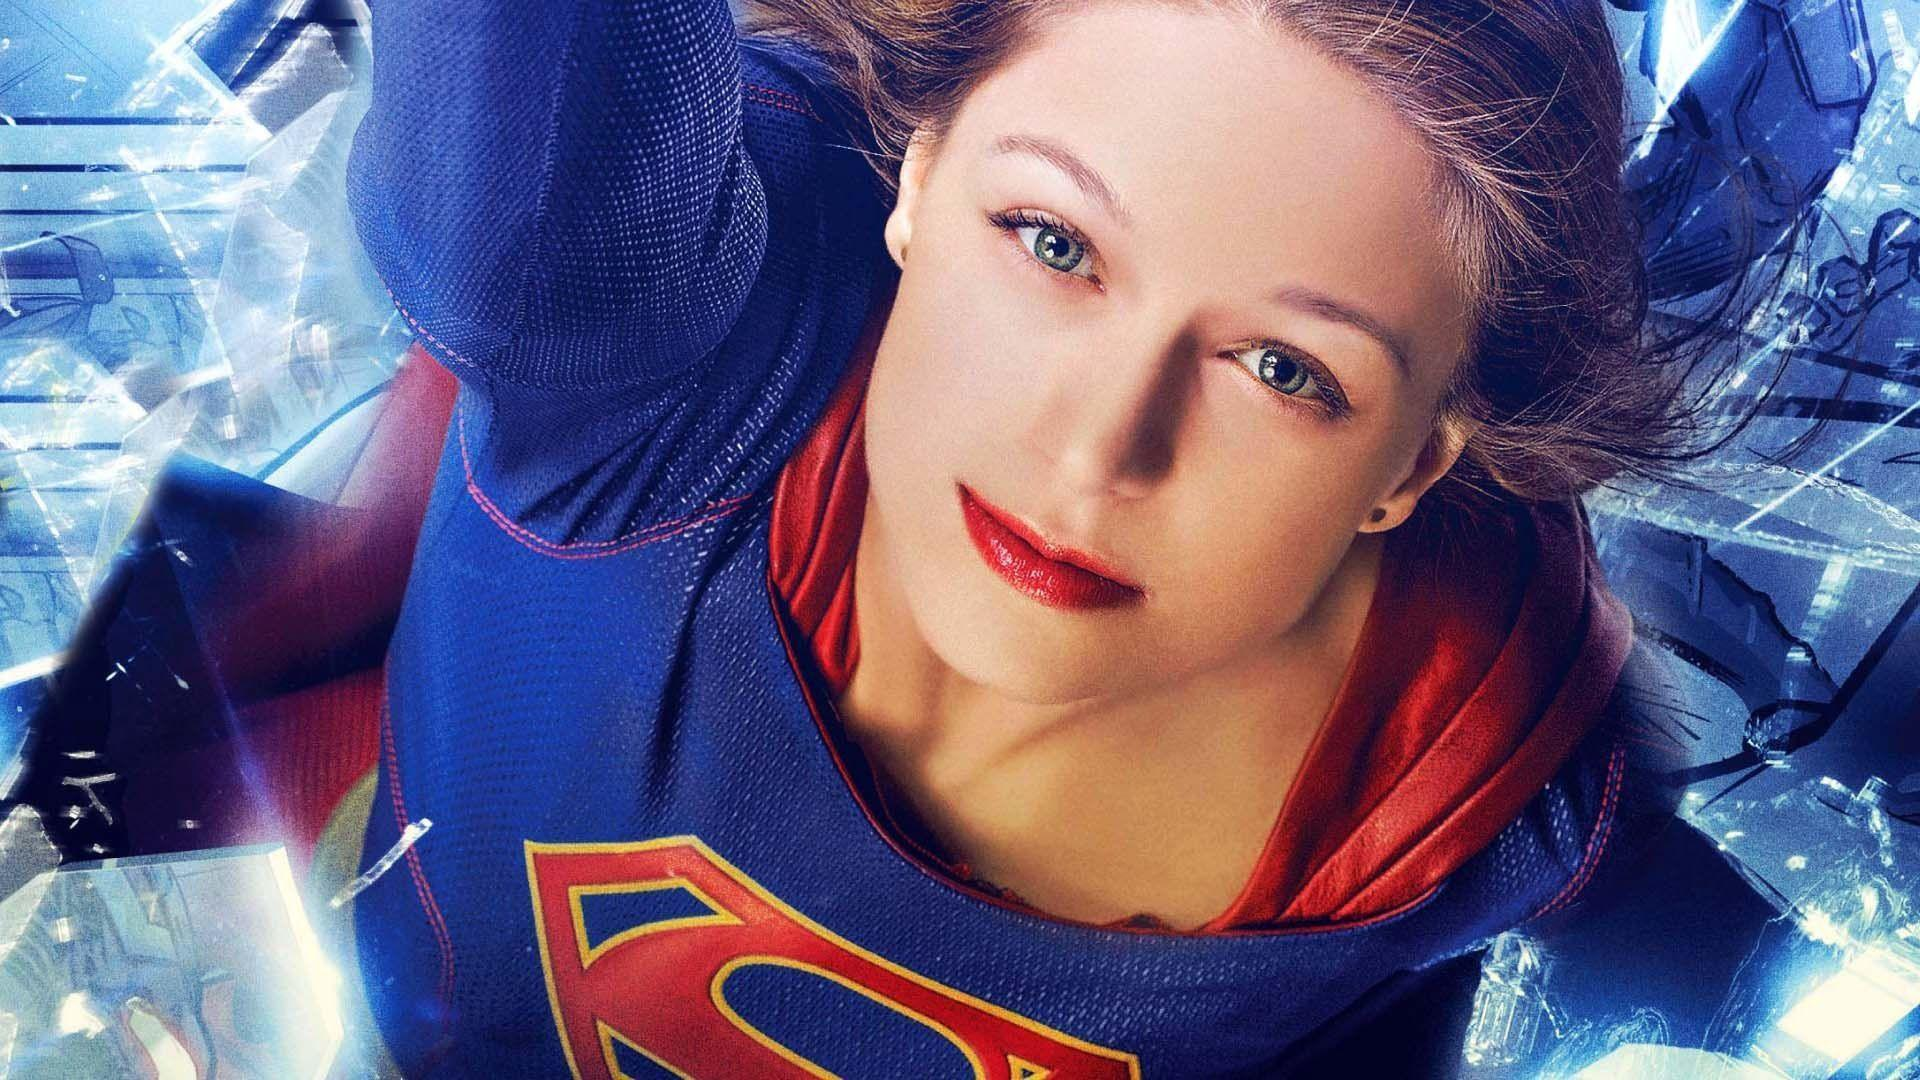 Supergirl Wallpapers 1080p